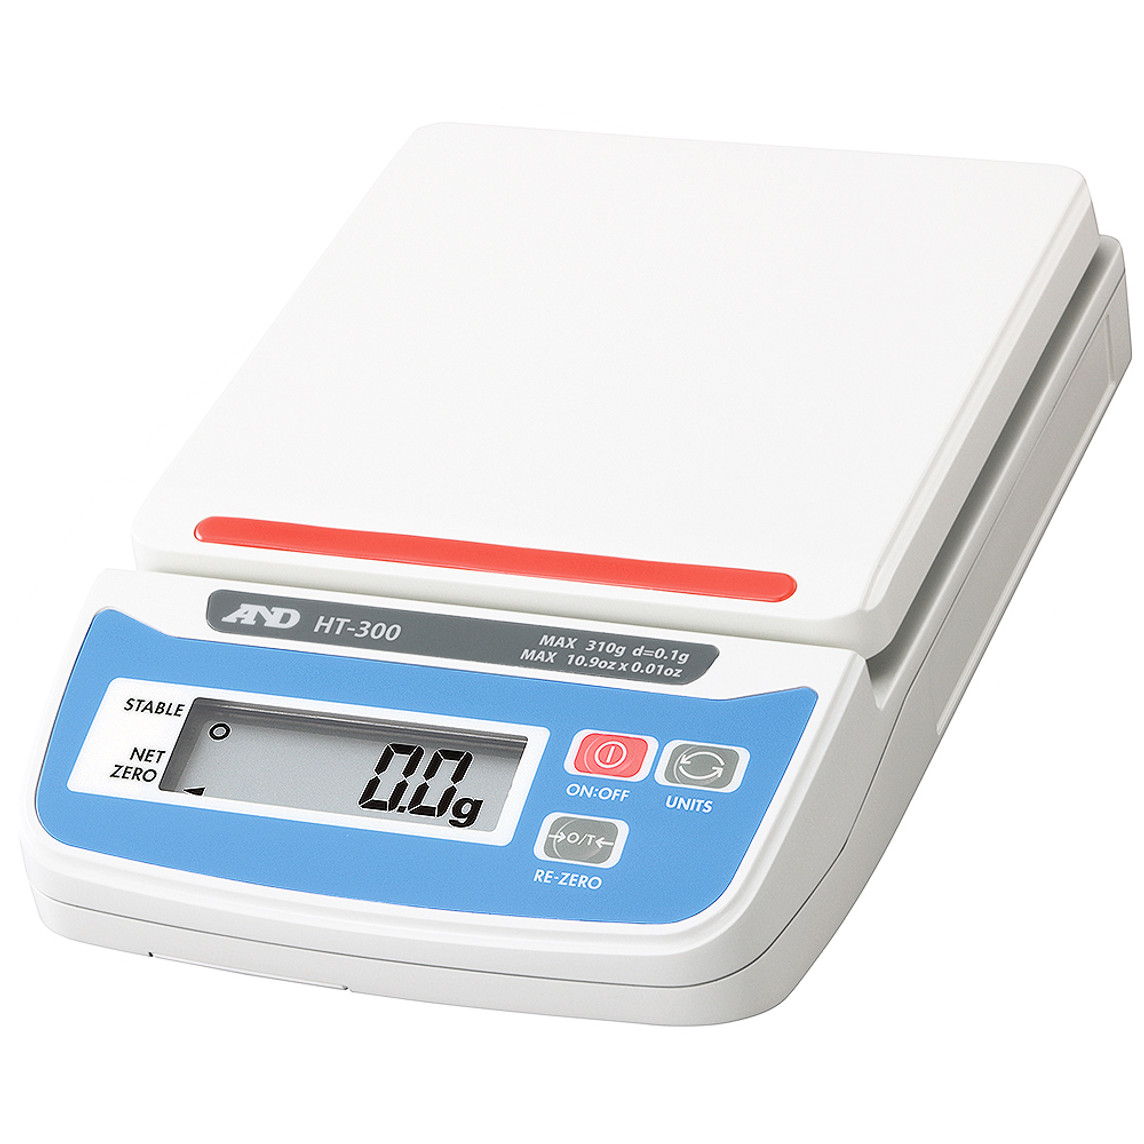 A&D HT Accurate Weight Scales